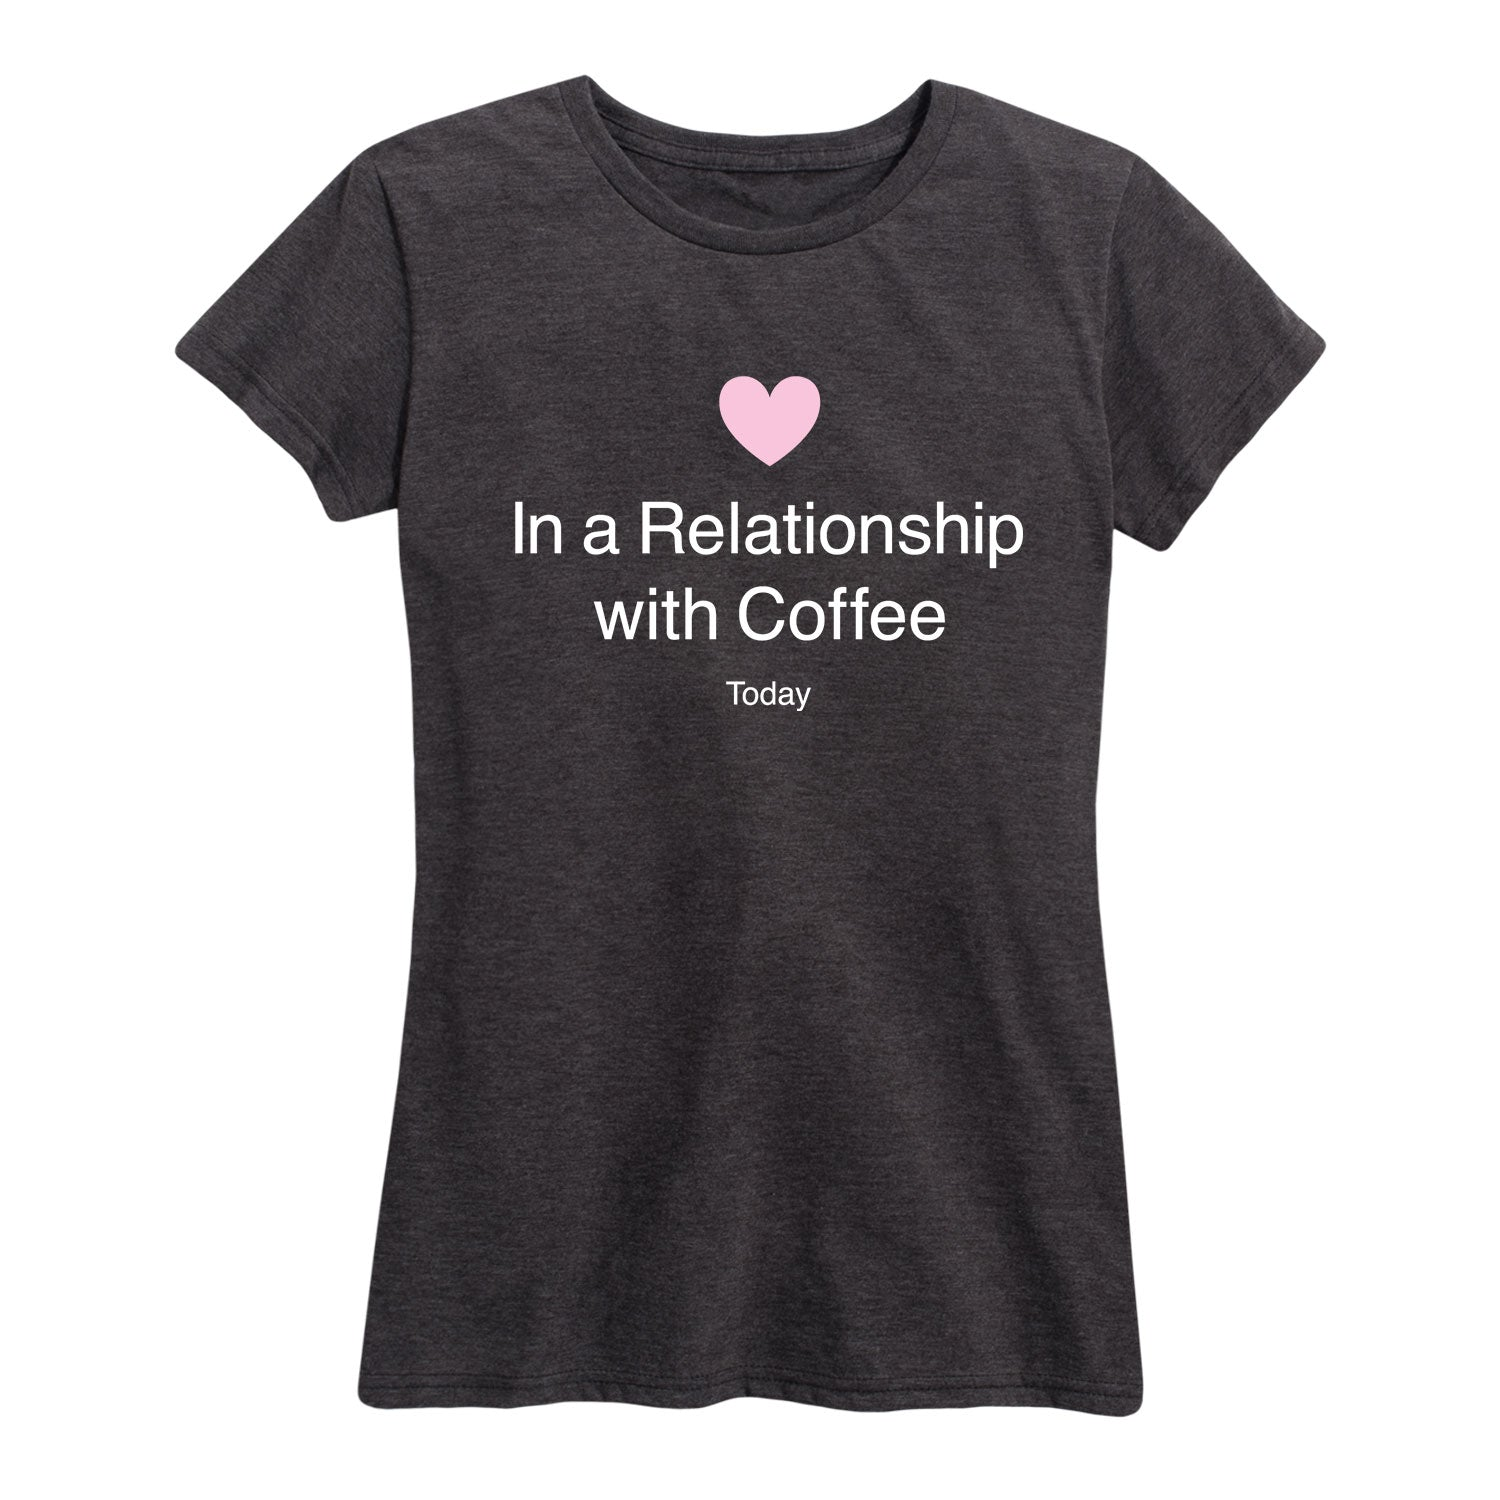 In A Relationship With Coffee - Women's Short Sleeve T-Shirt